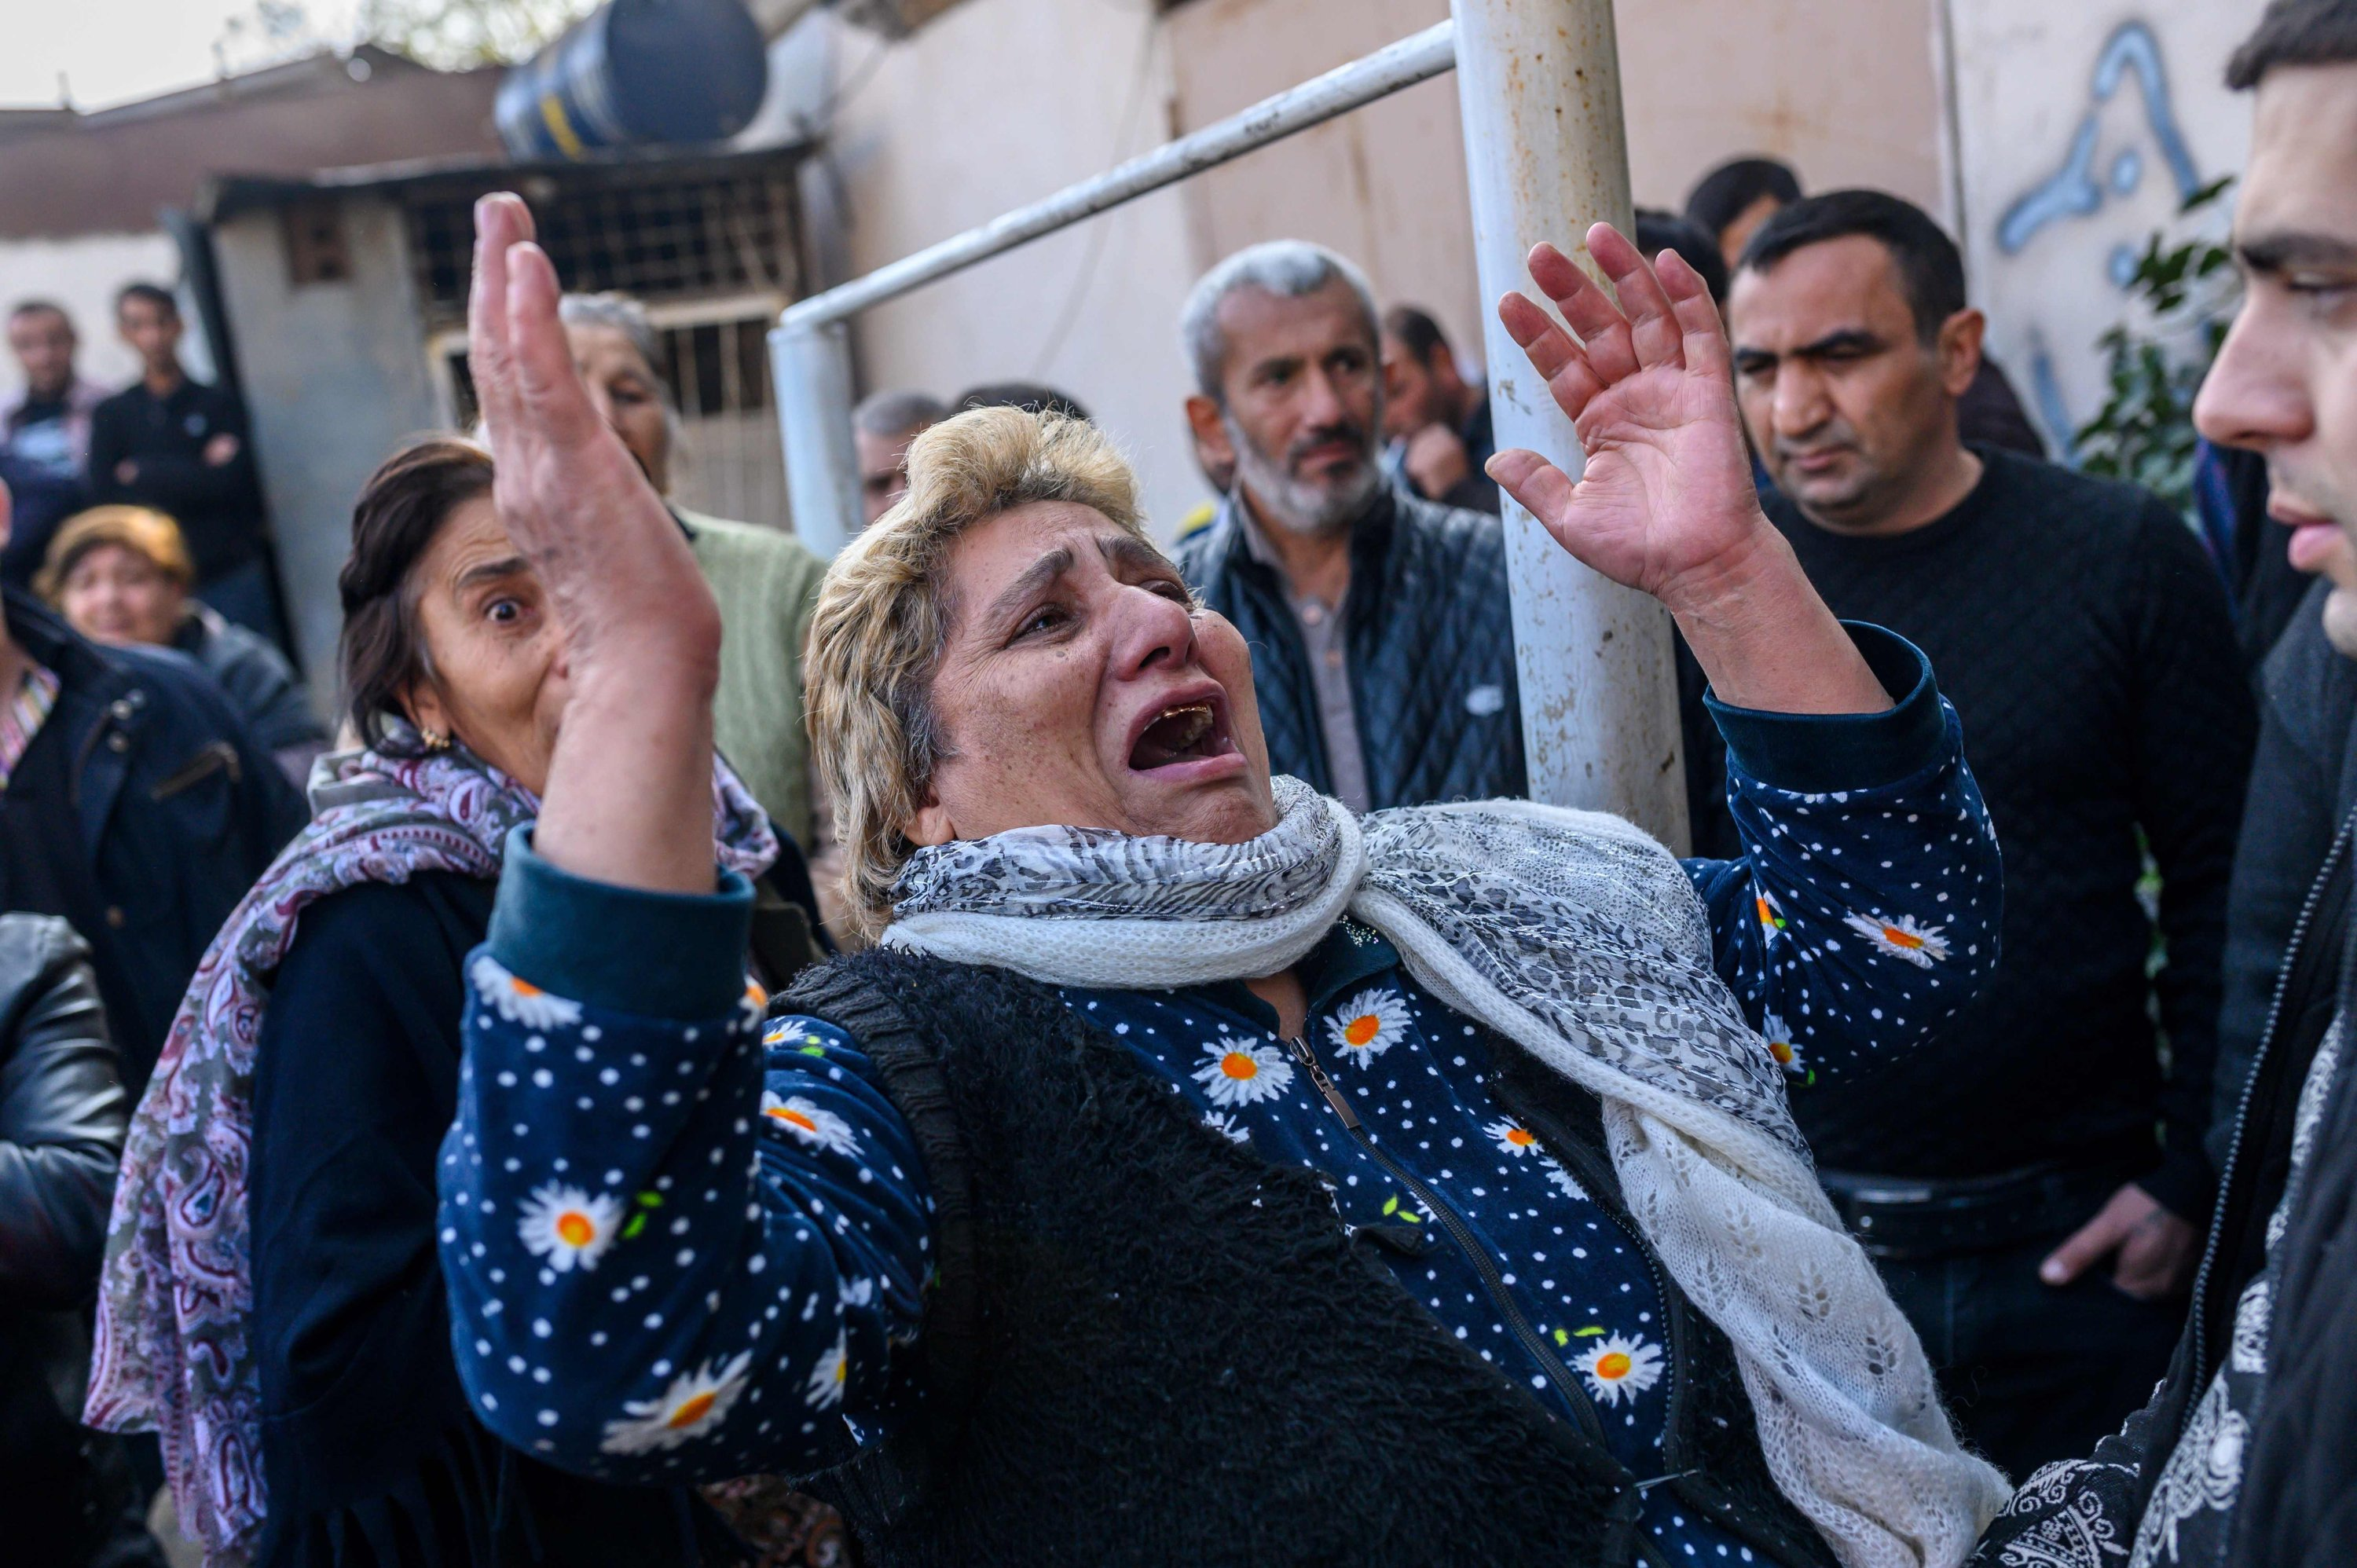 Azerbaijani women react as rescuers search for victims or survivors at the blast site hit by an Armenian rocket in the city of Ganja, Azerbaijan, Oct. 11, 2020. (AFP)